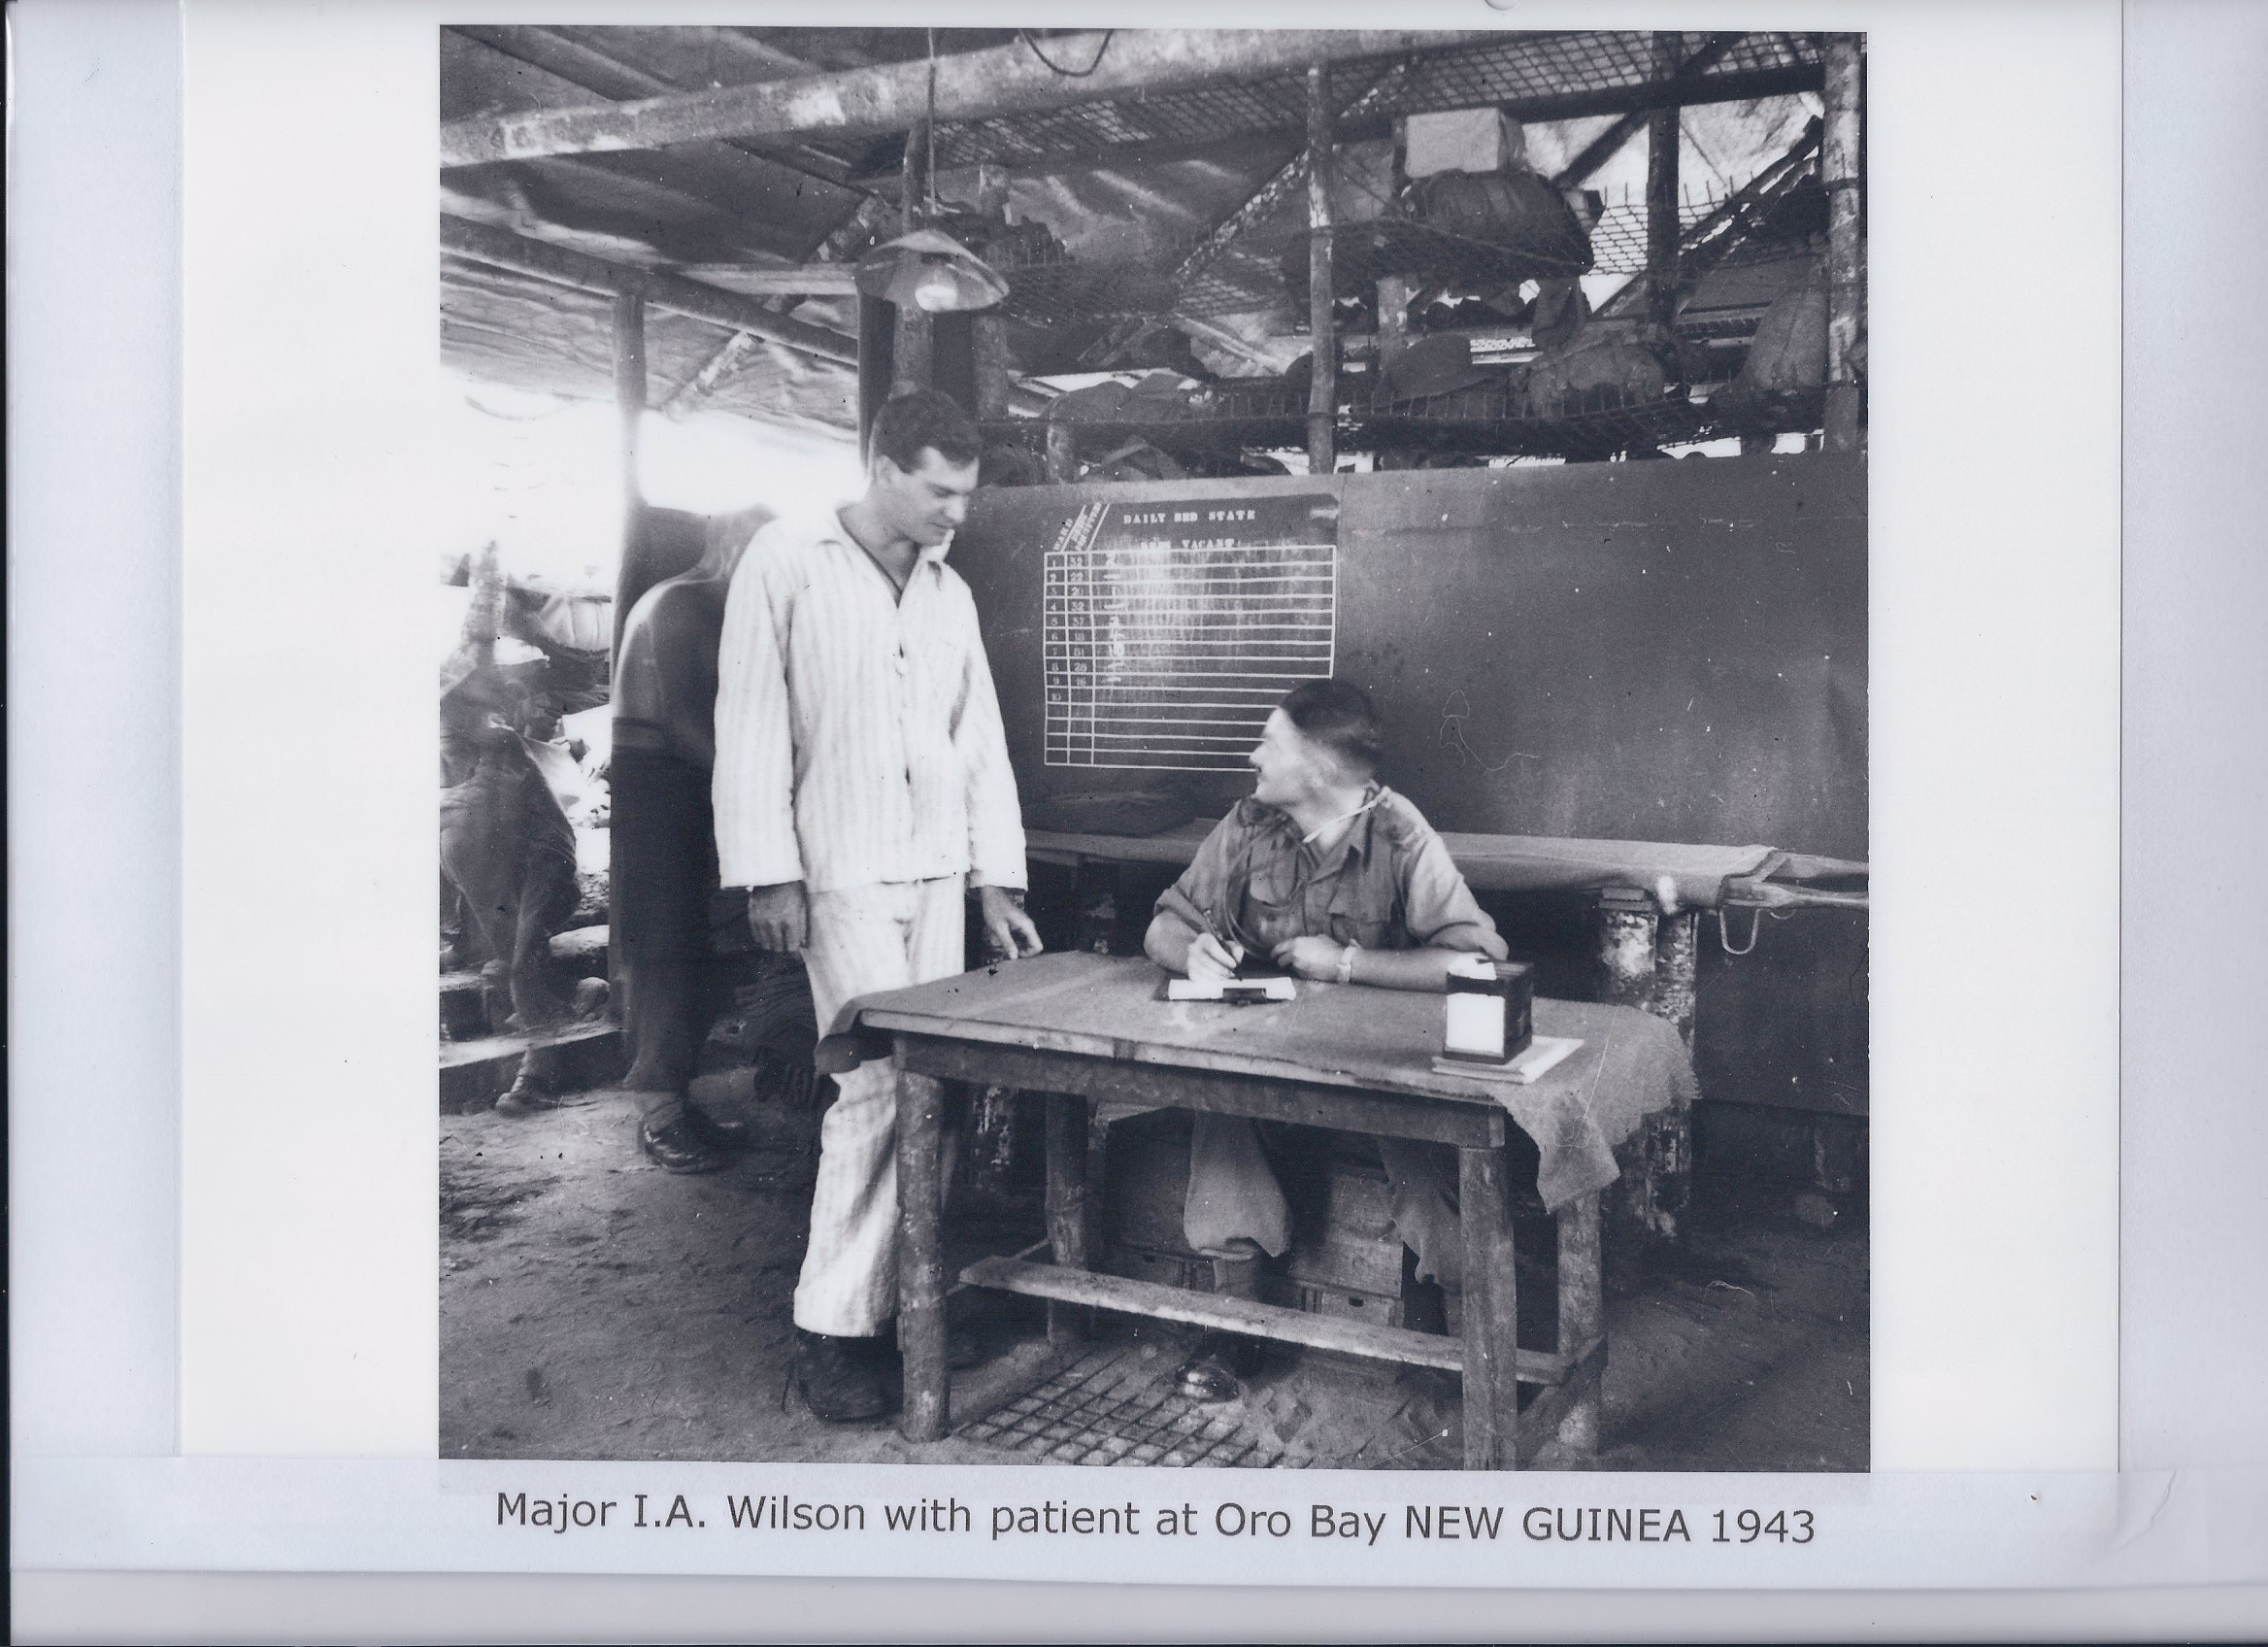 Major I.A. Wilson with patient at Oro Bay NEW GUINEA 1943